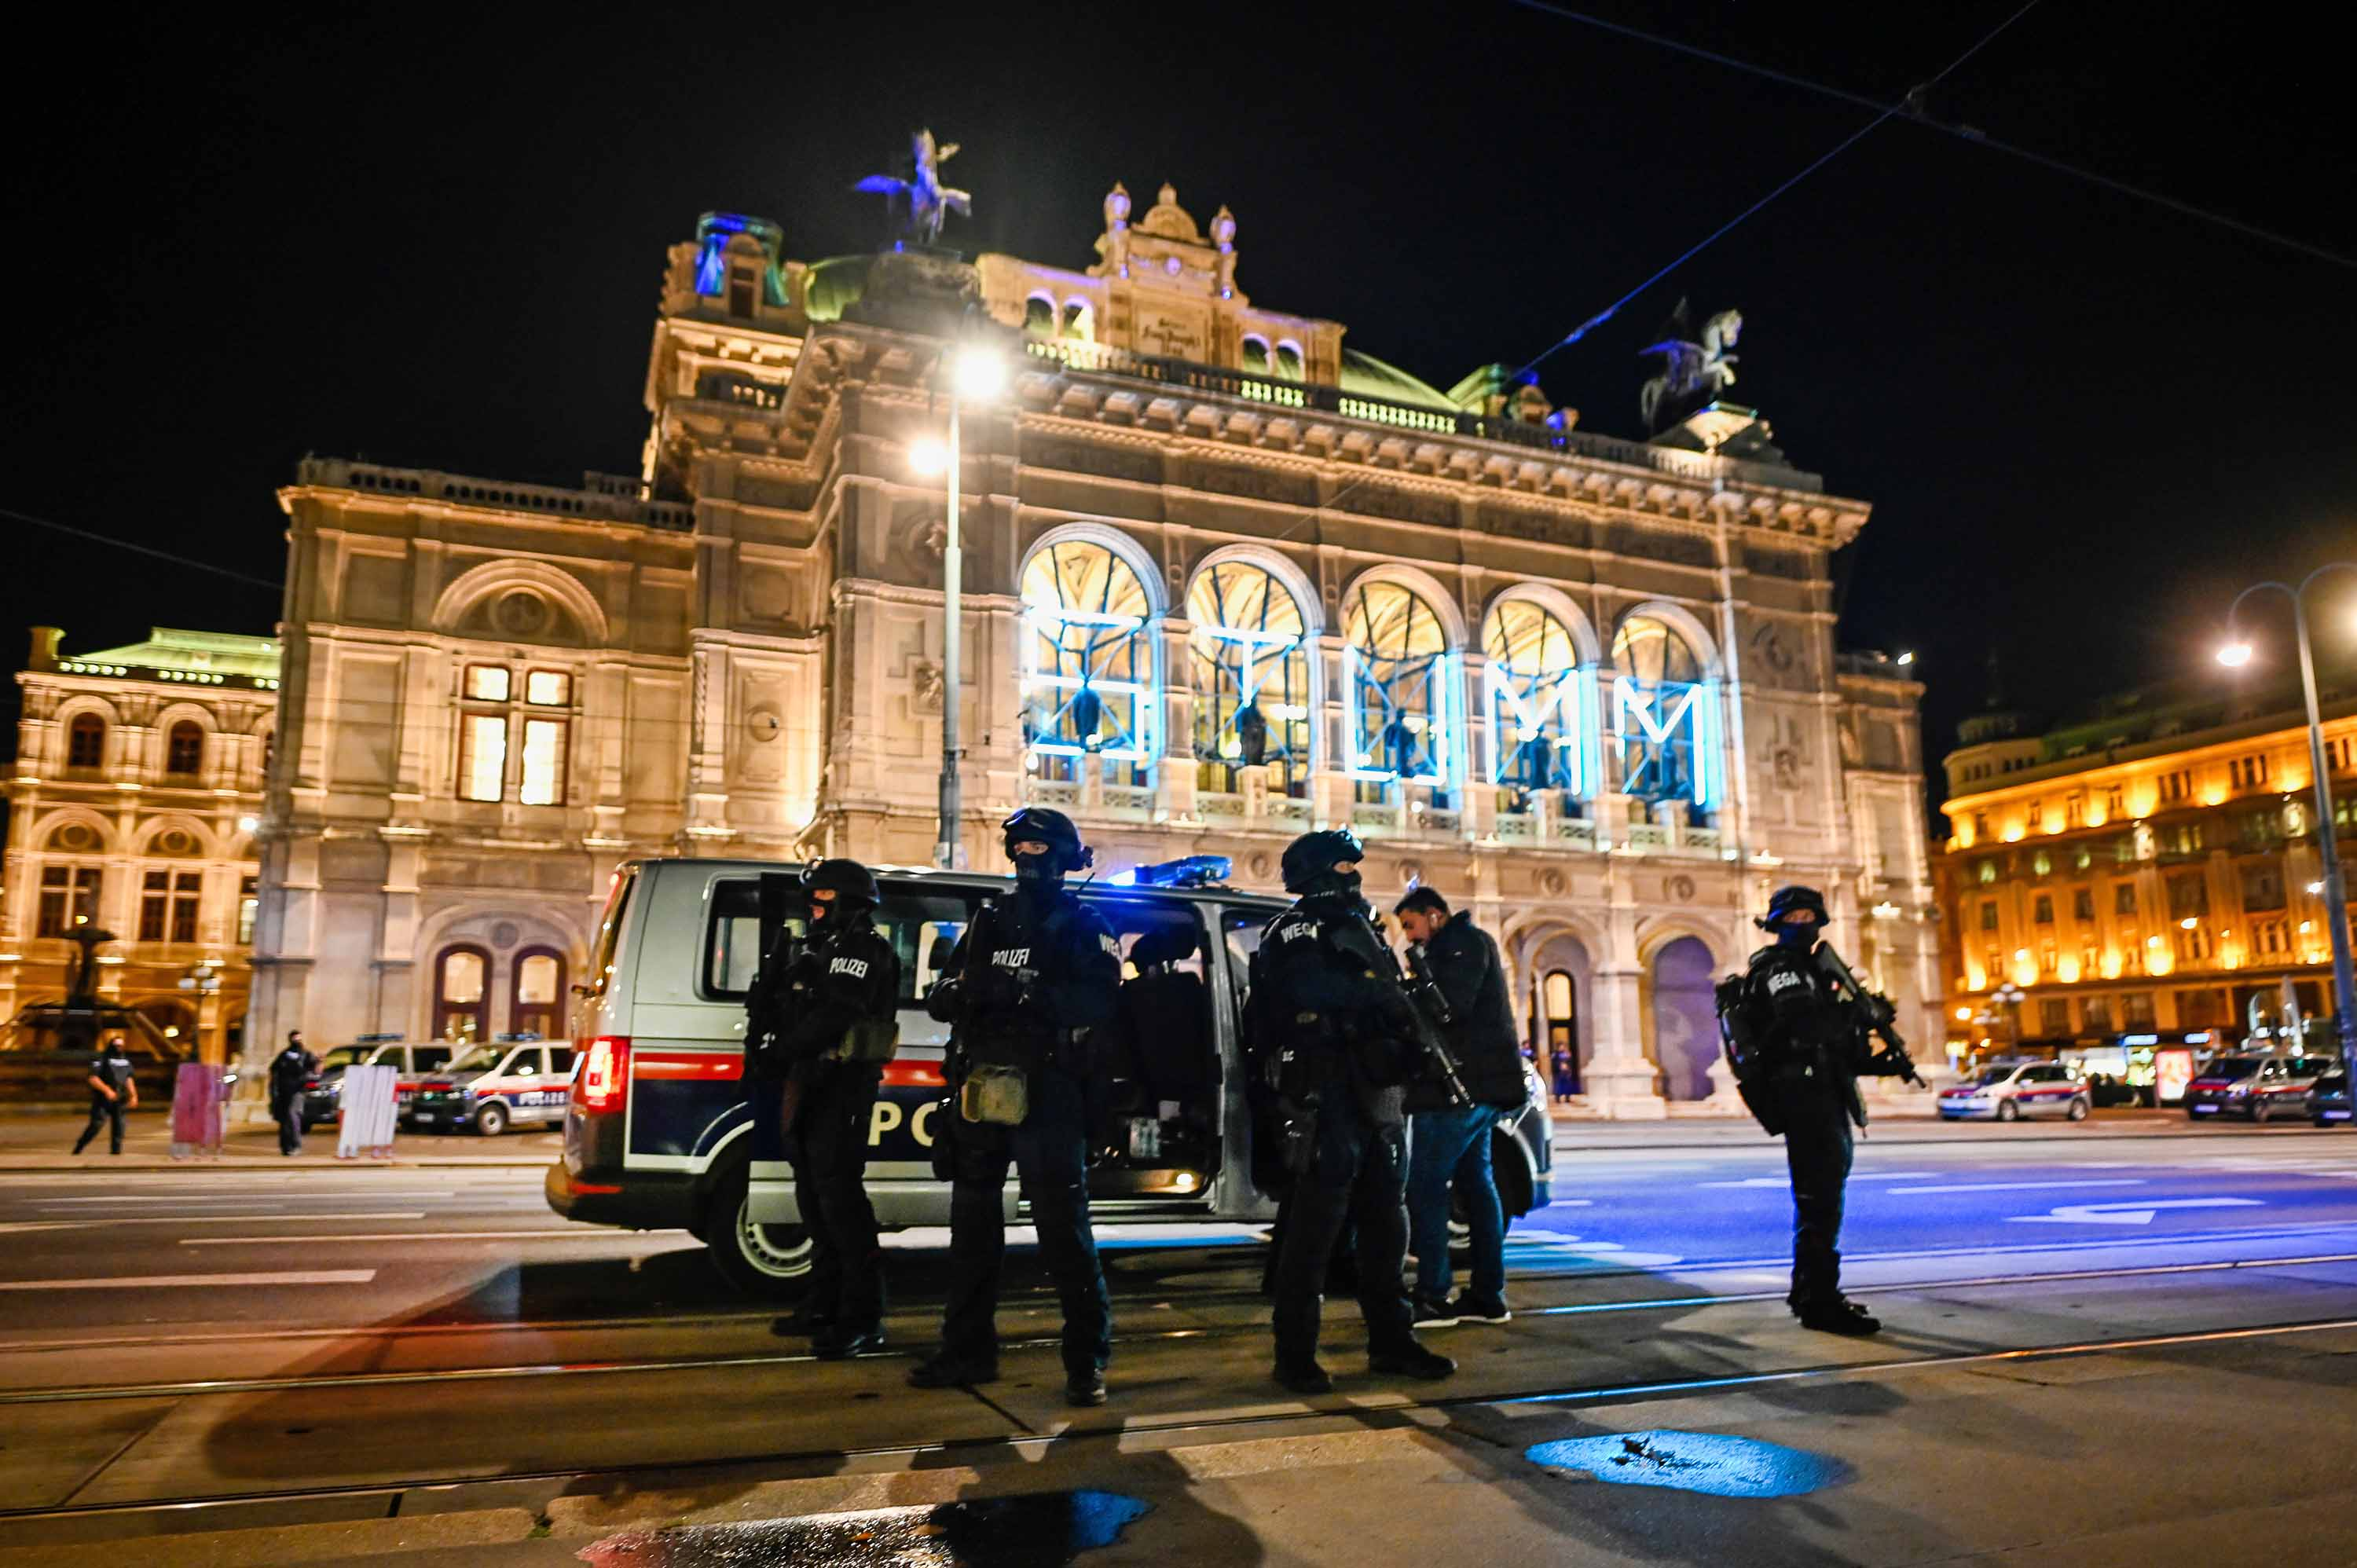 Heavily armed police stand outside the Vienna State Opera after shots were fired in the city center on Monday night.